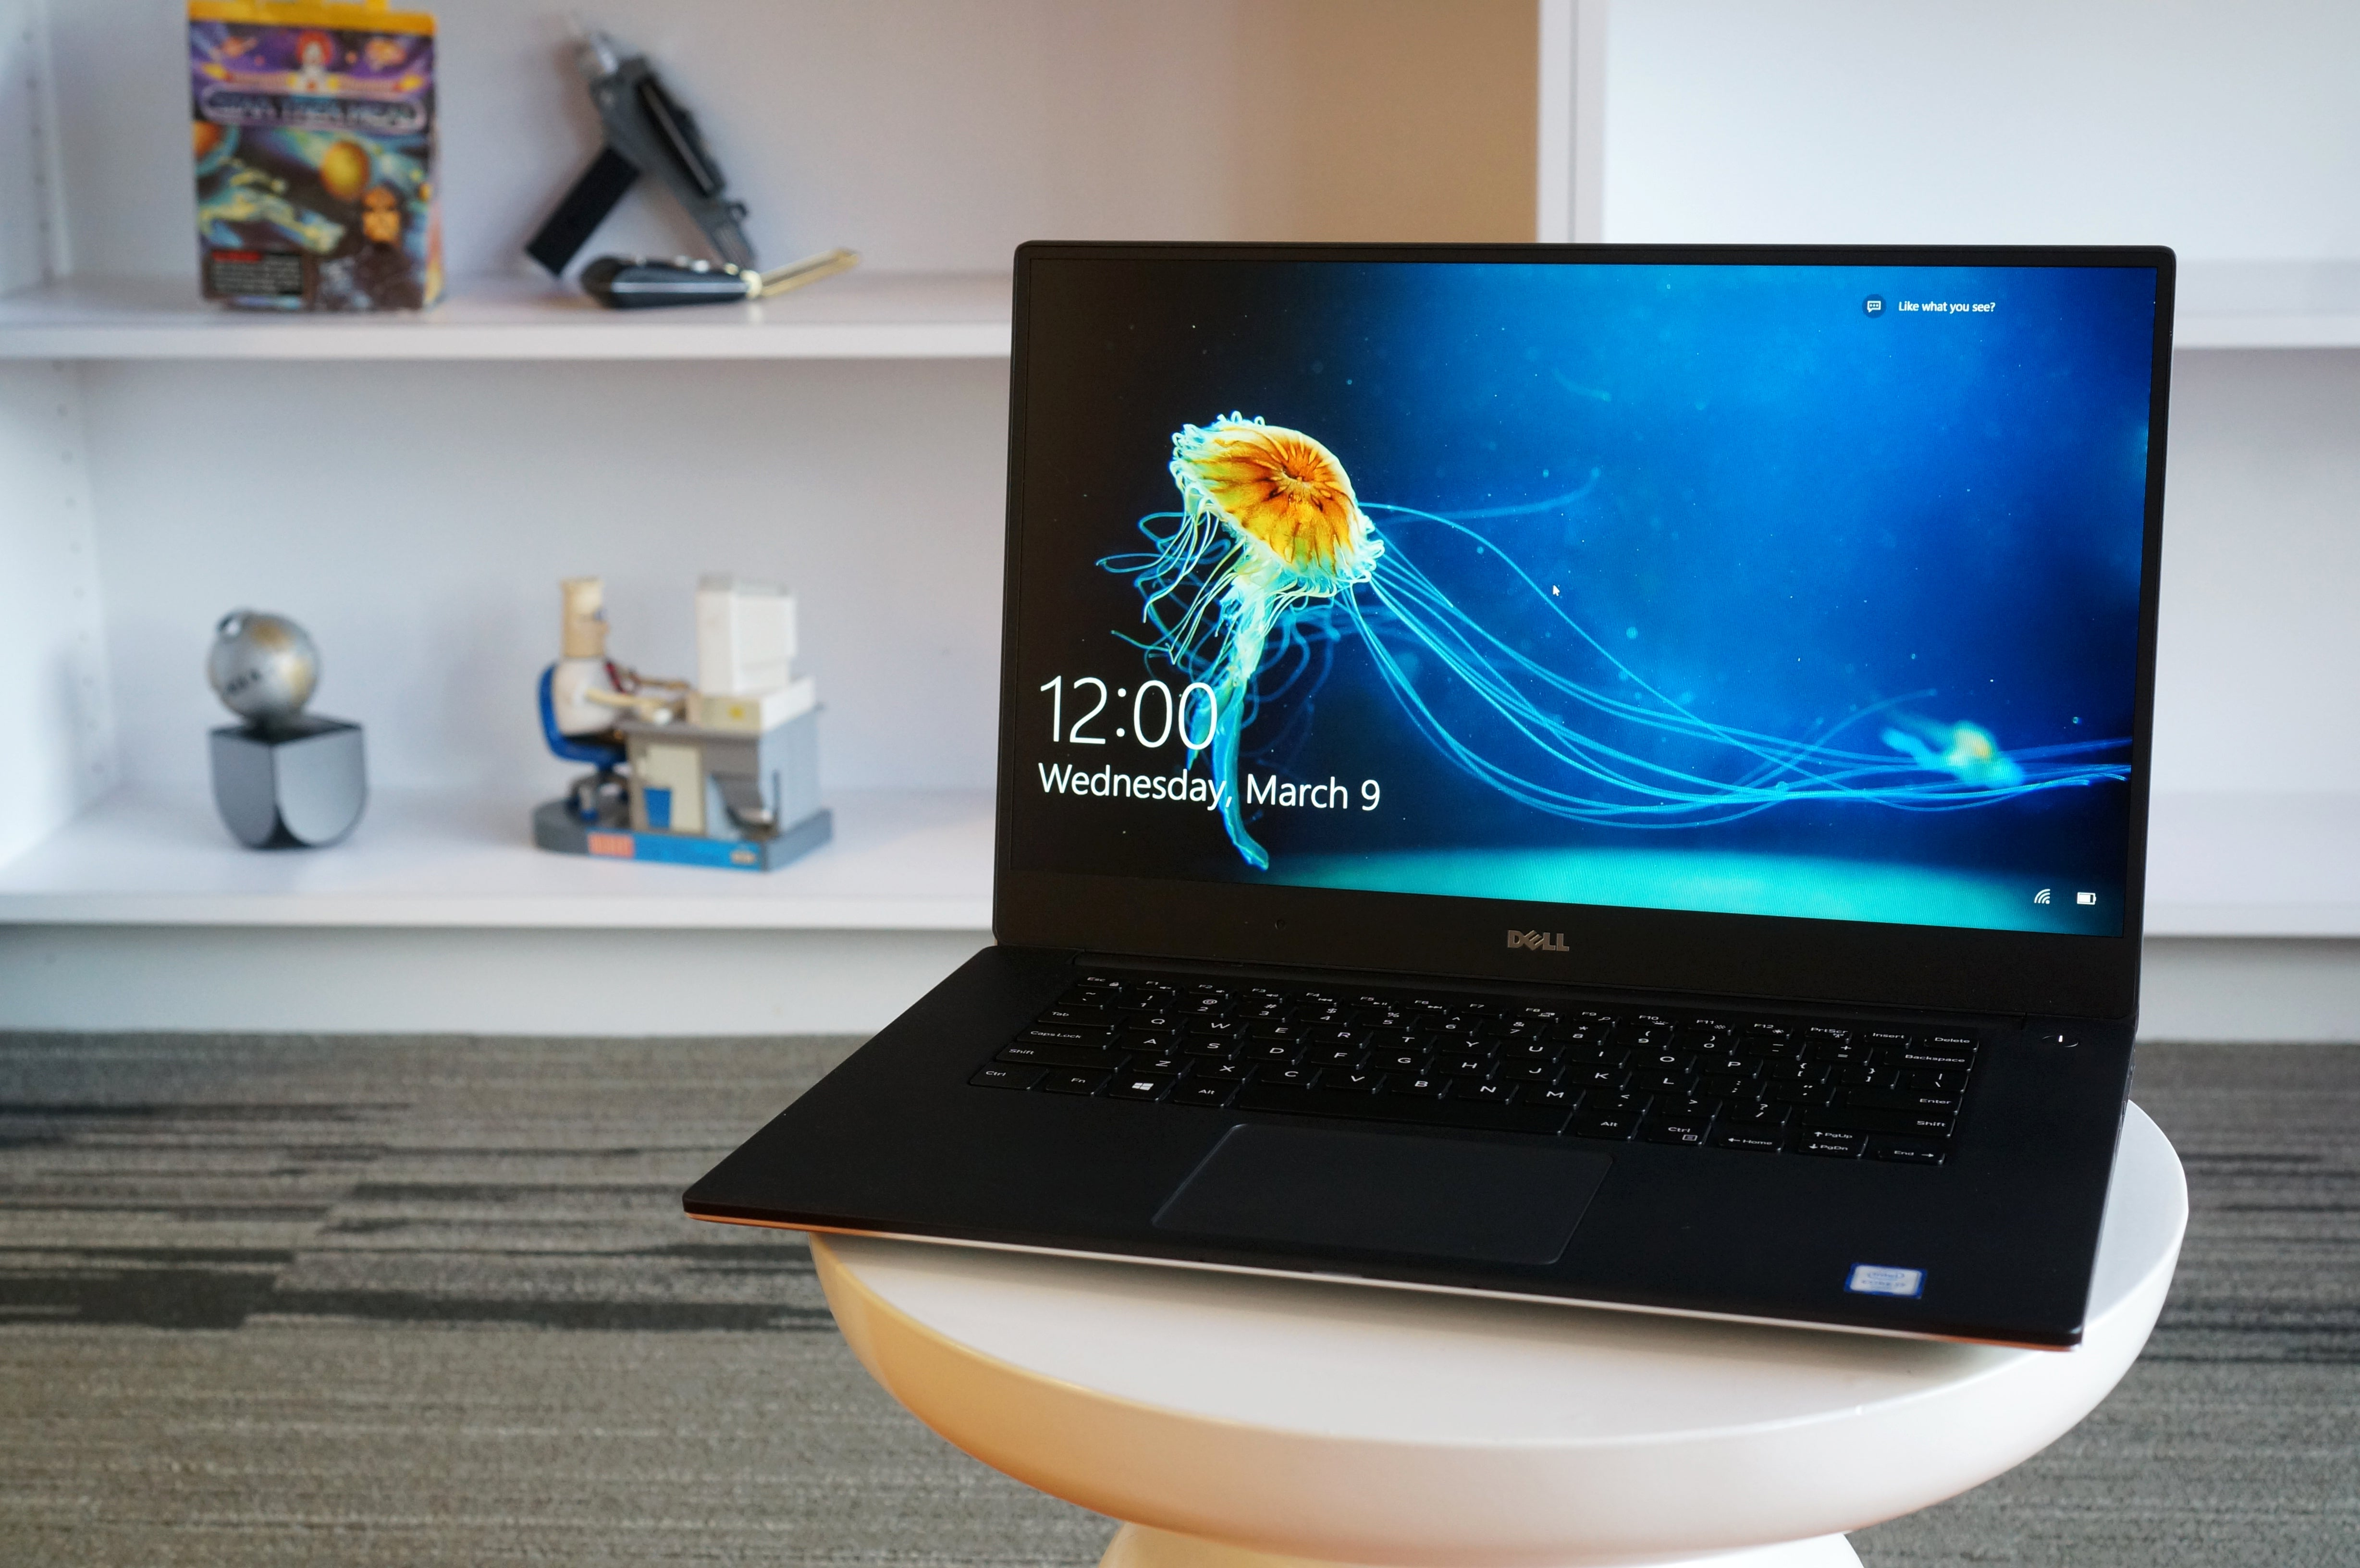 Tested The 1500 Dell Xps 15 Vs The 1500 Macbook Pro 13